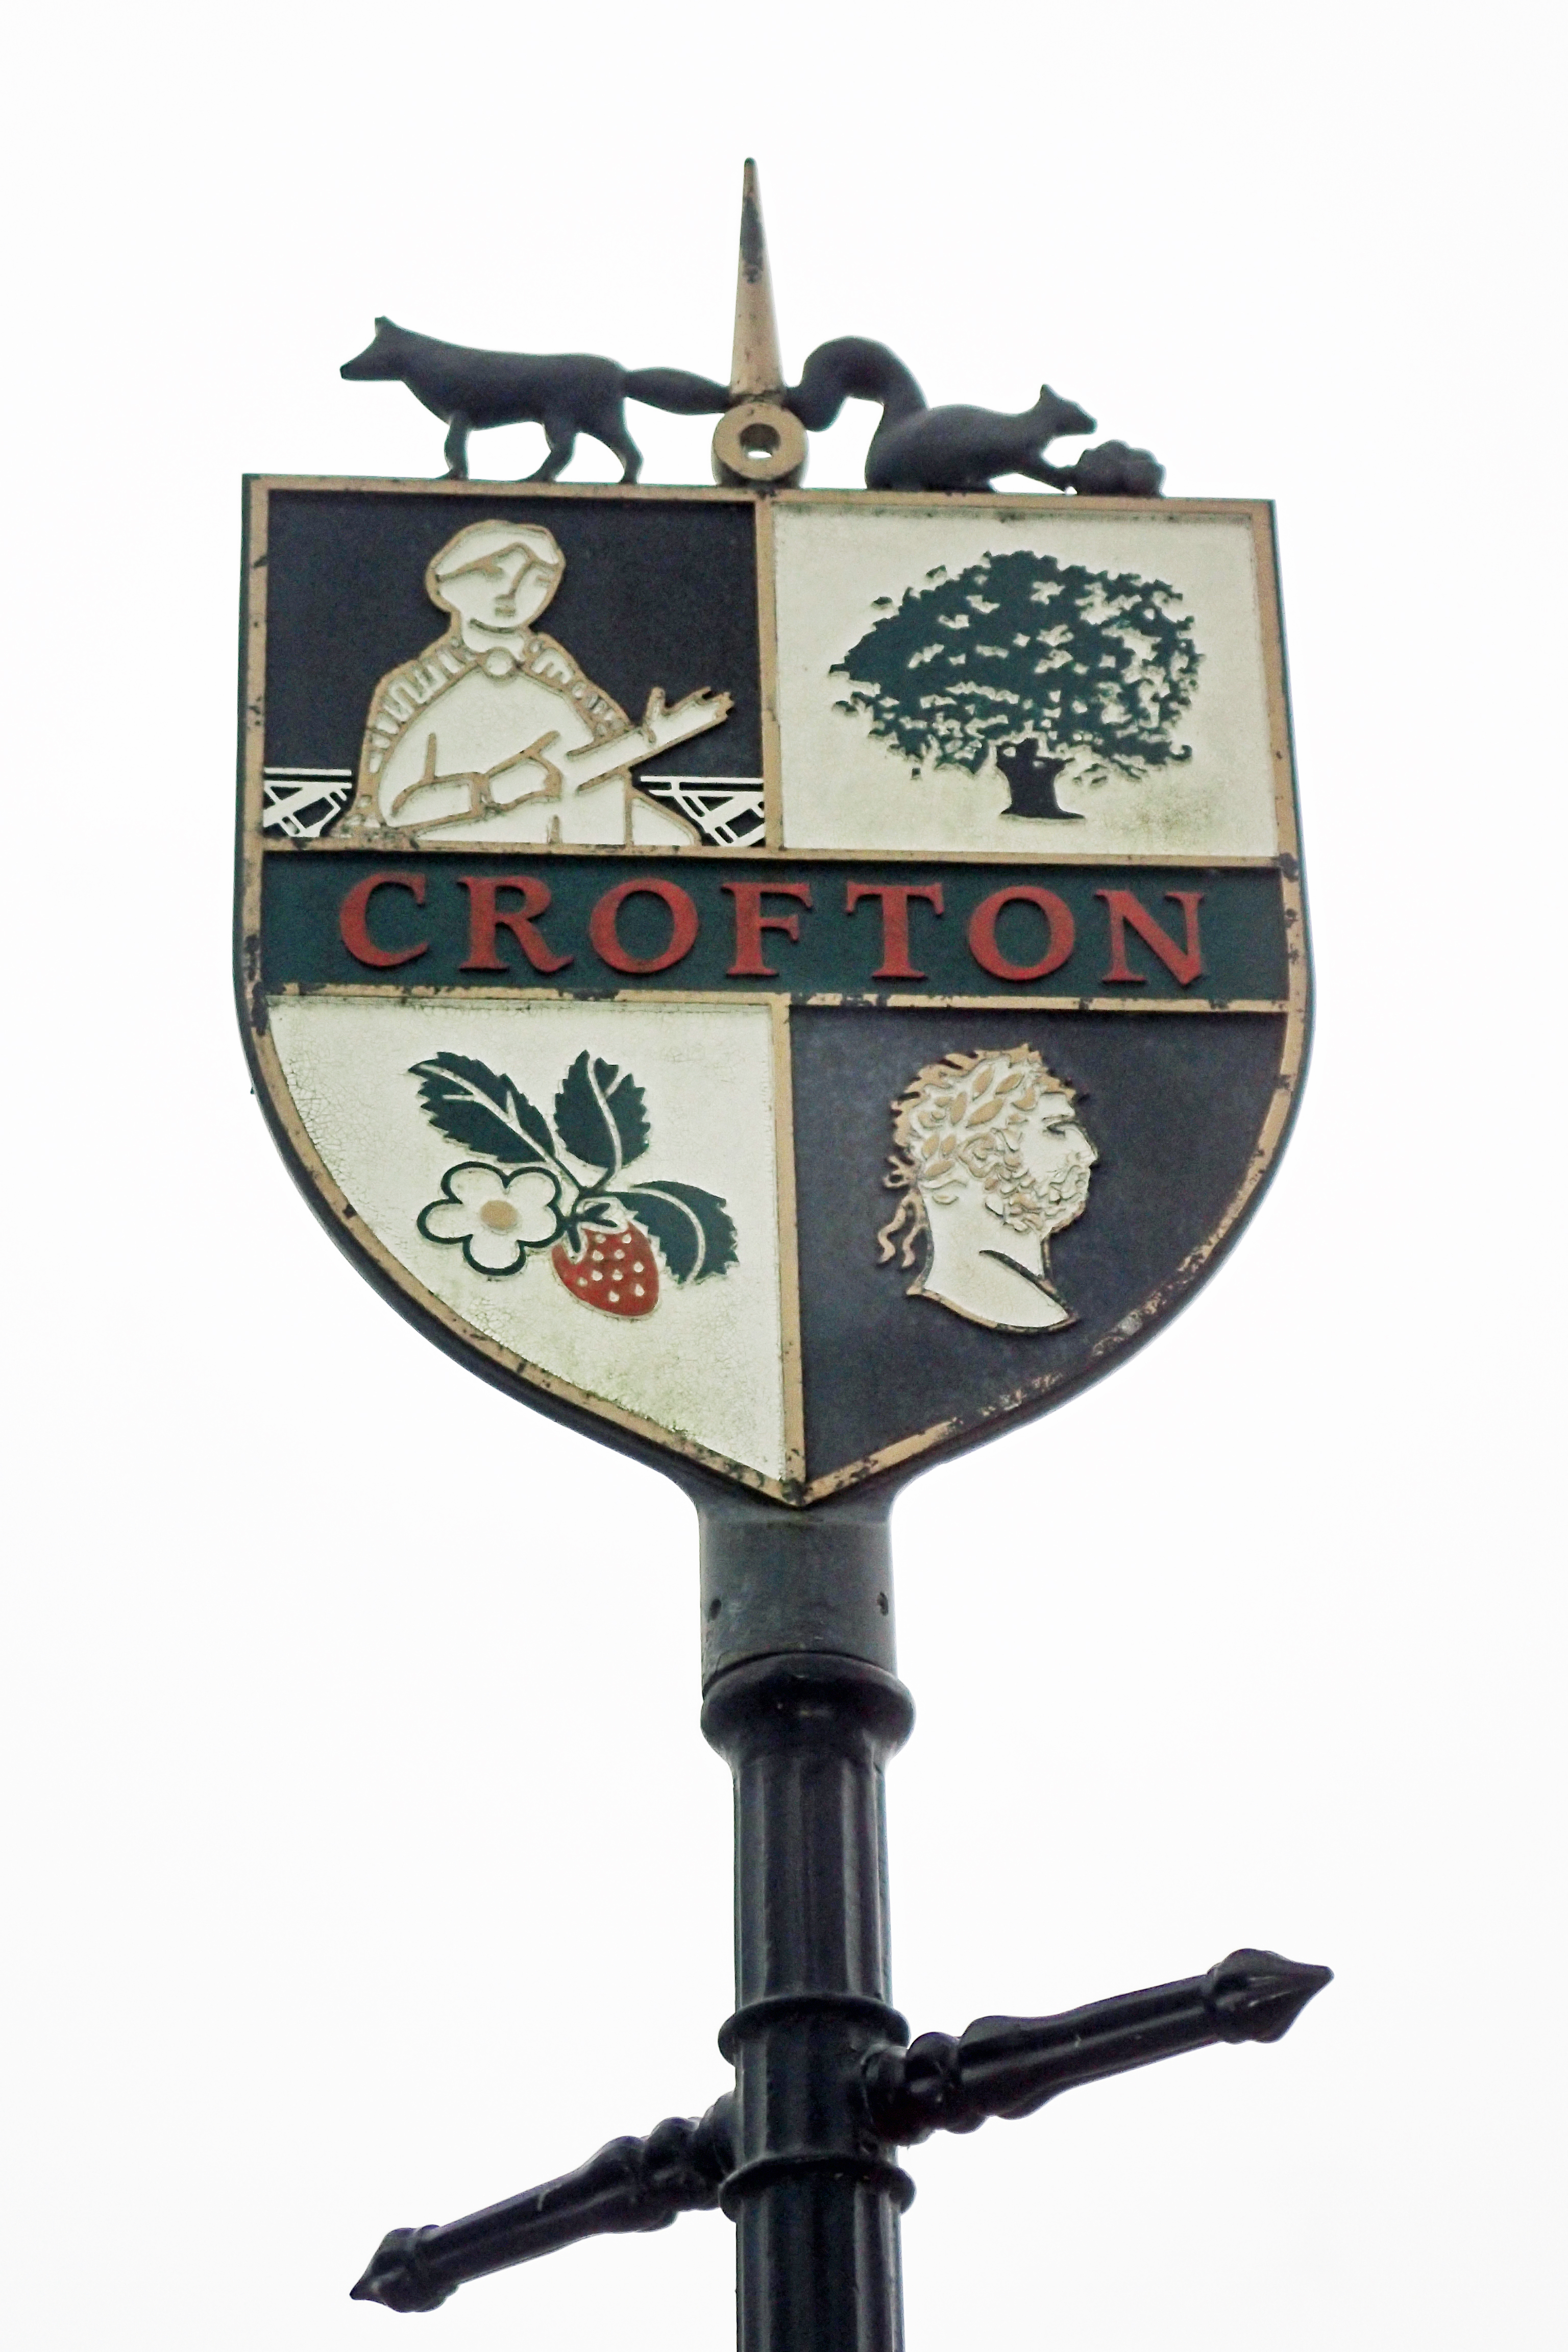 Crofton village sign, passed on the London LOOP